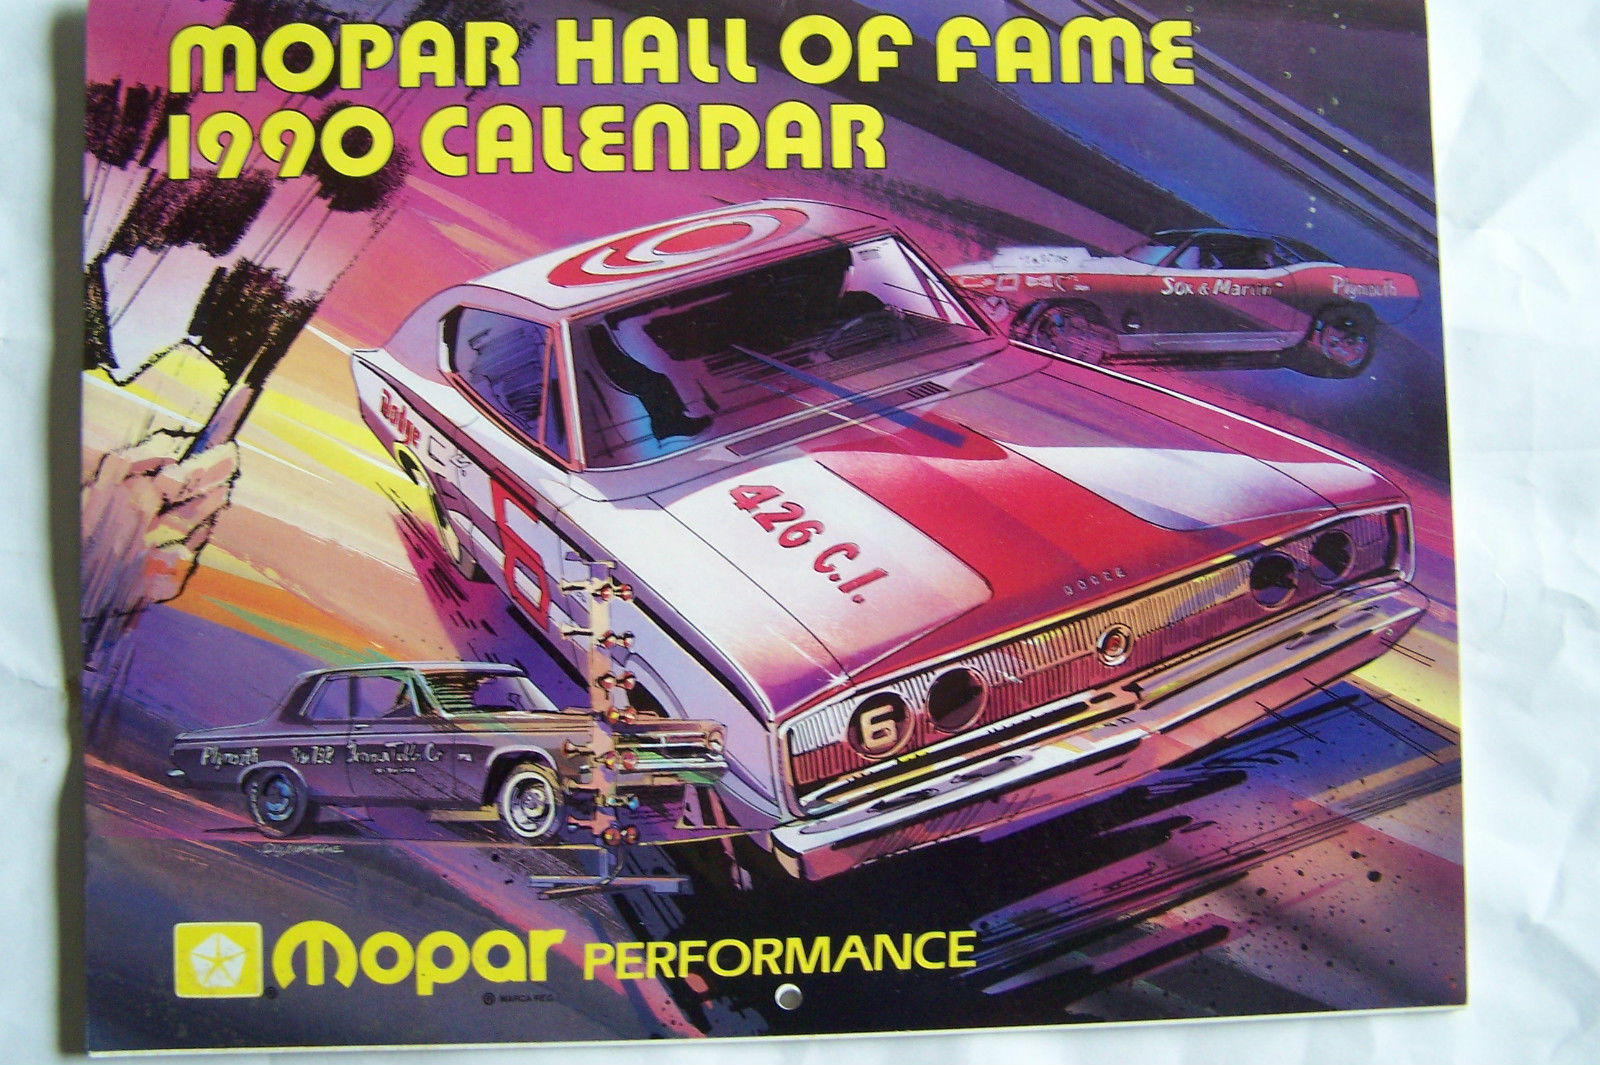 Primary image for 1990 mopar plymouth dodge hemi chrysler owners hall of fame calender brochure